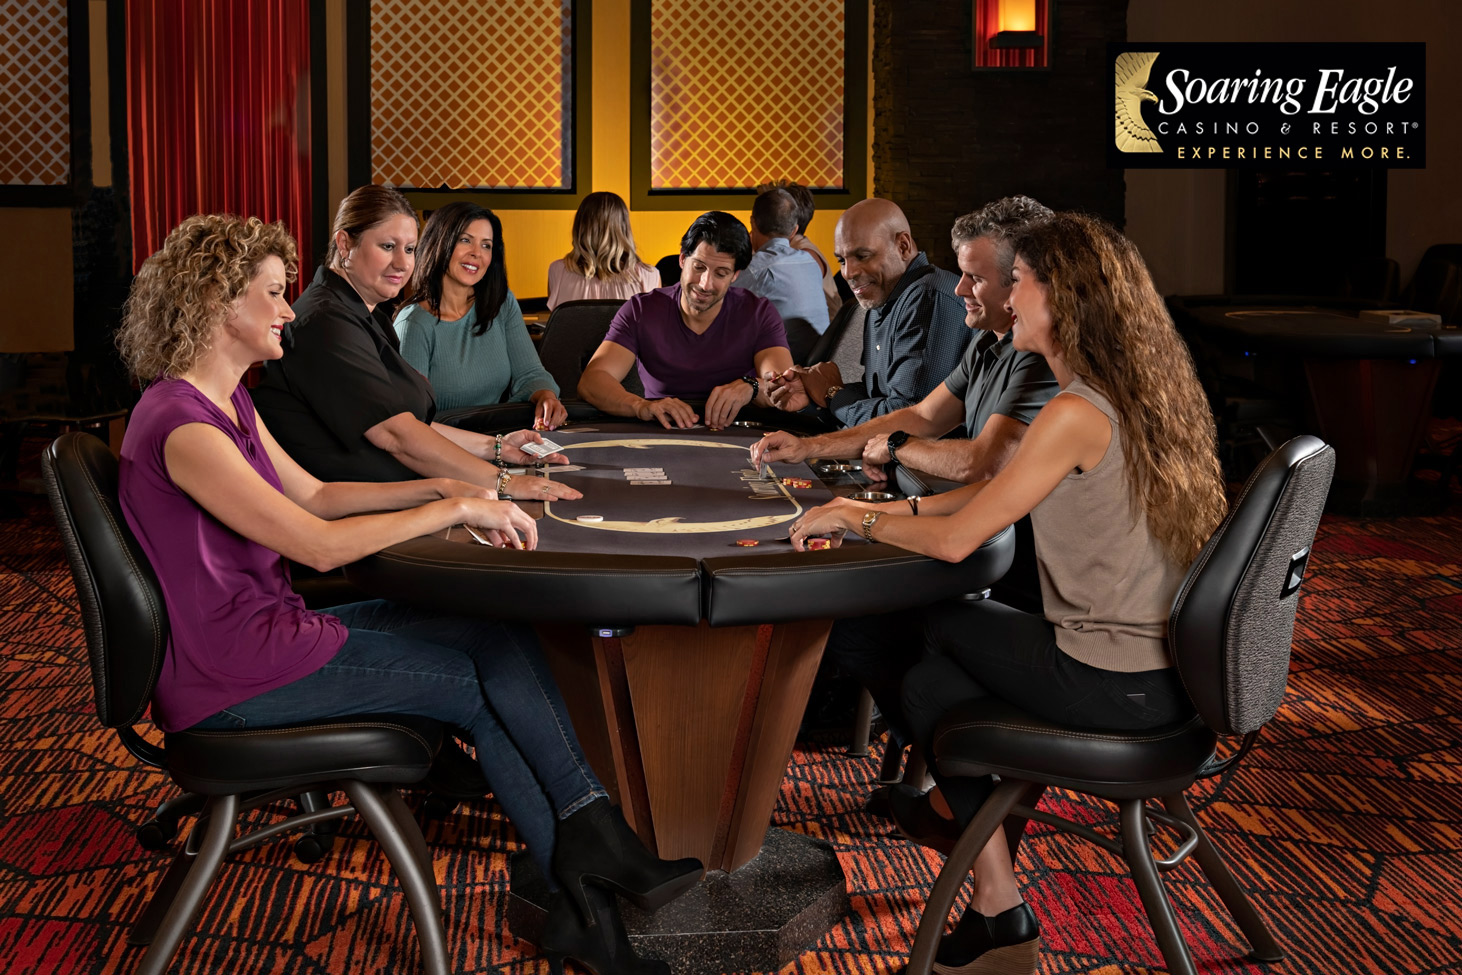 photography of poker players in a casino